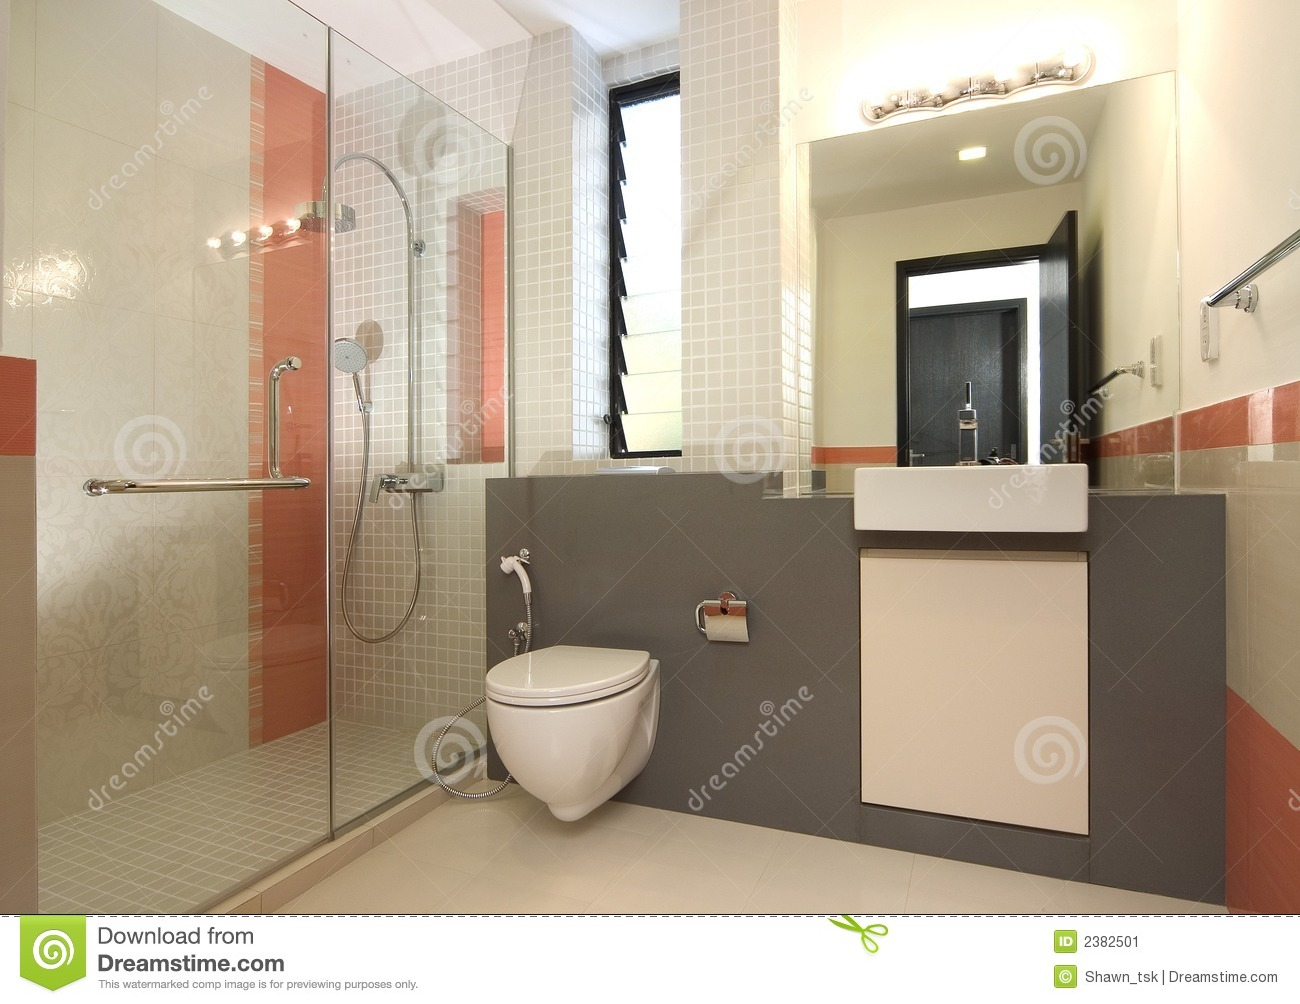 Interior Design Bathroom Stock Image Image Of Light